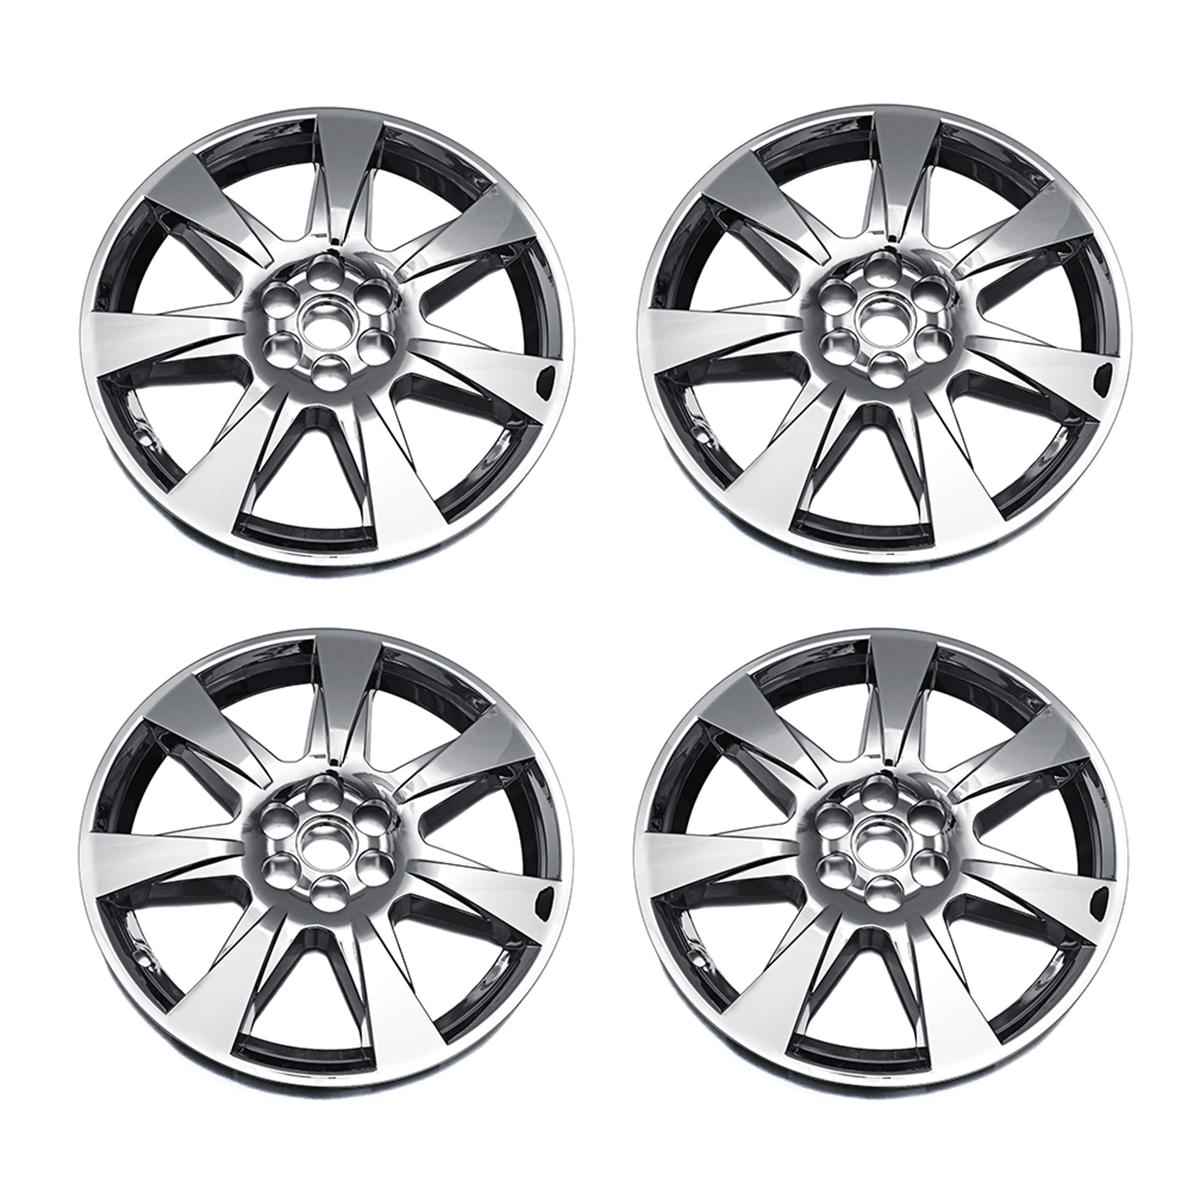 "4PCS Car 20"" Hubcaps Silver Double thickness Plating Cap Cover For Cadillac SRX 2010-2012 Auto Refit Accessorie"